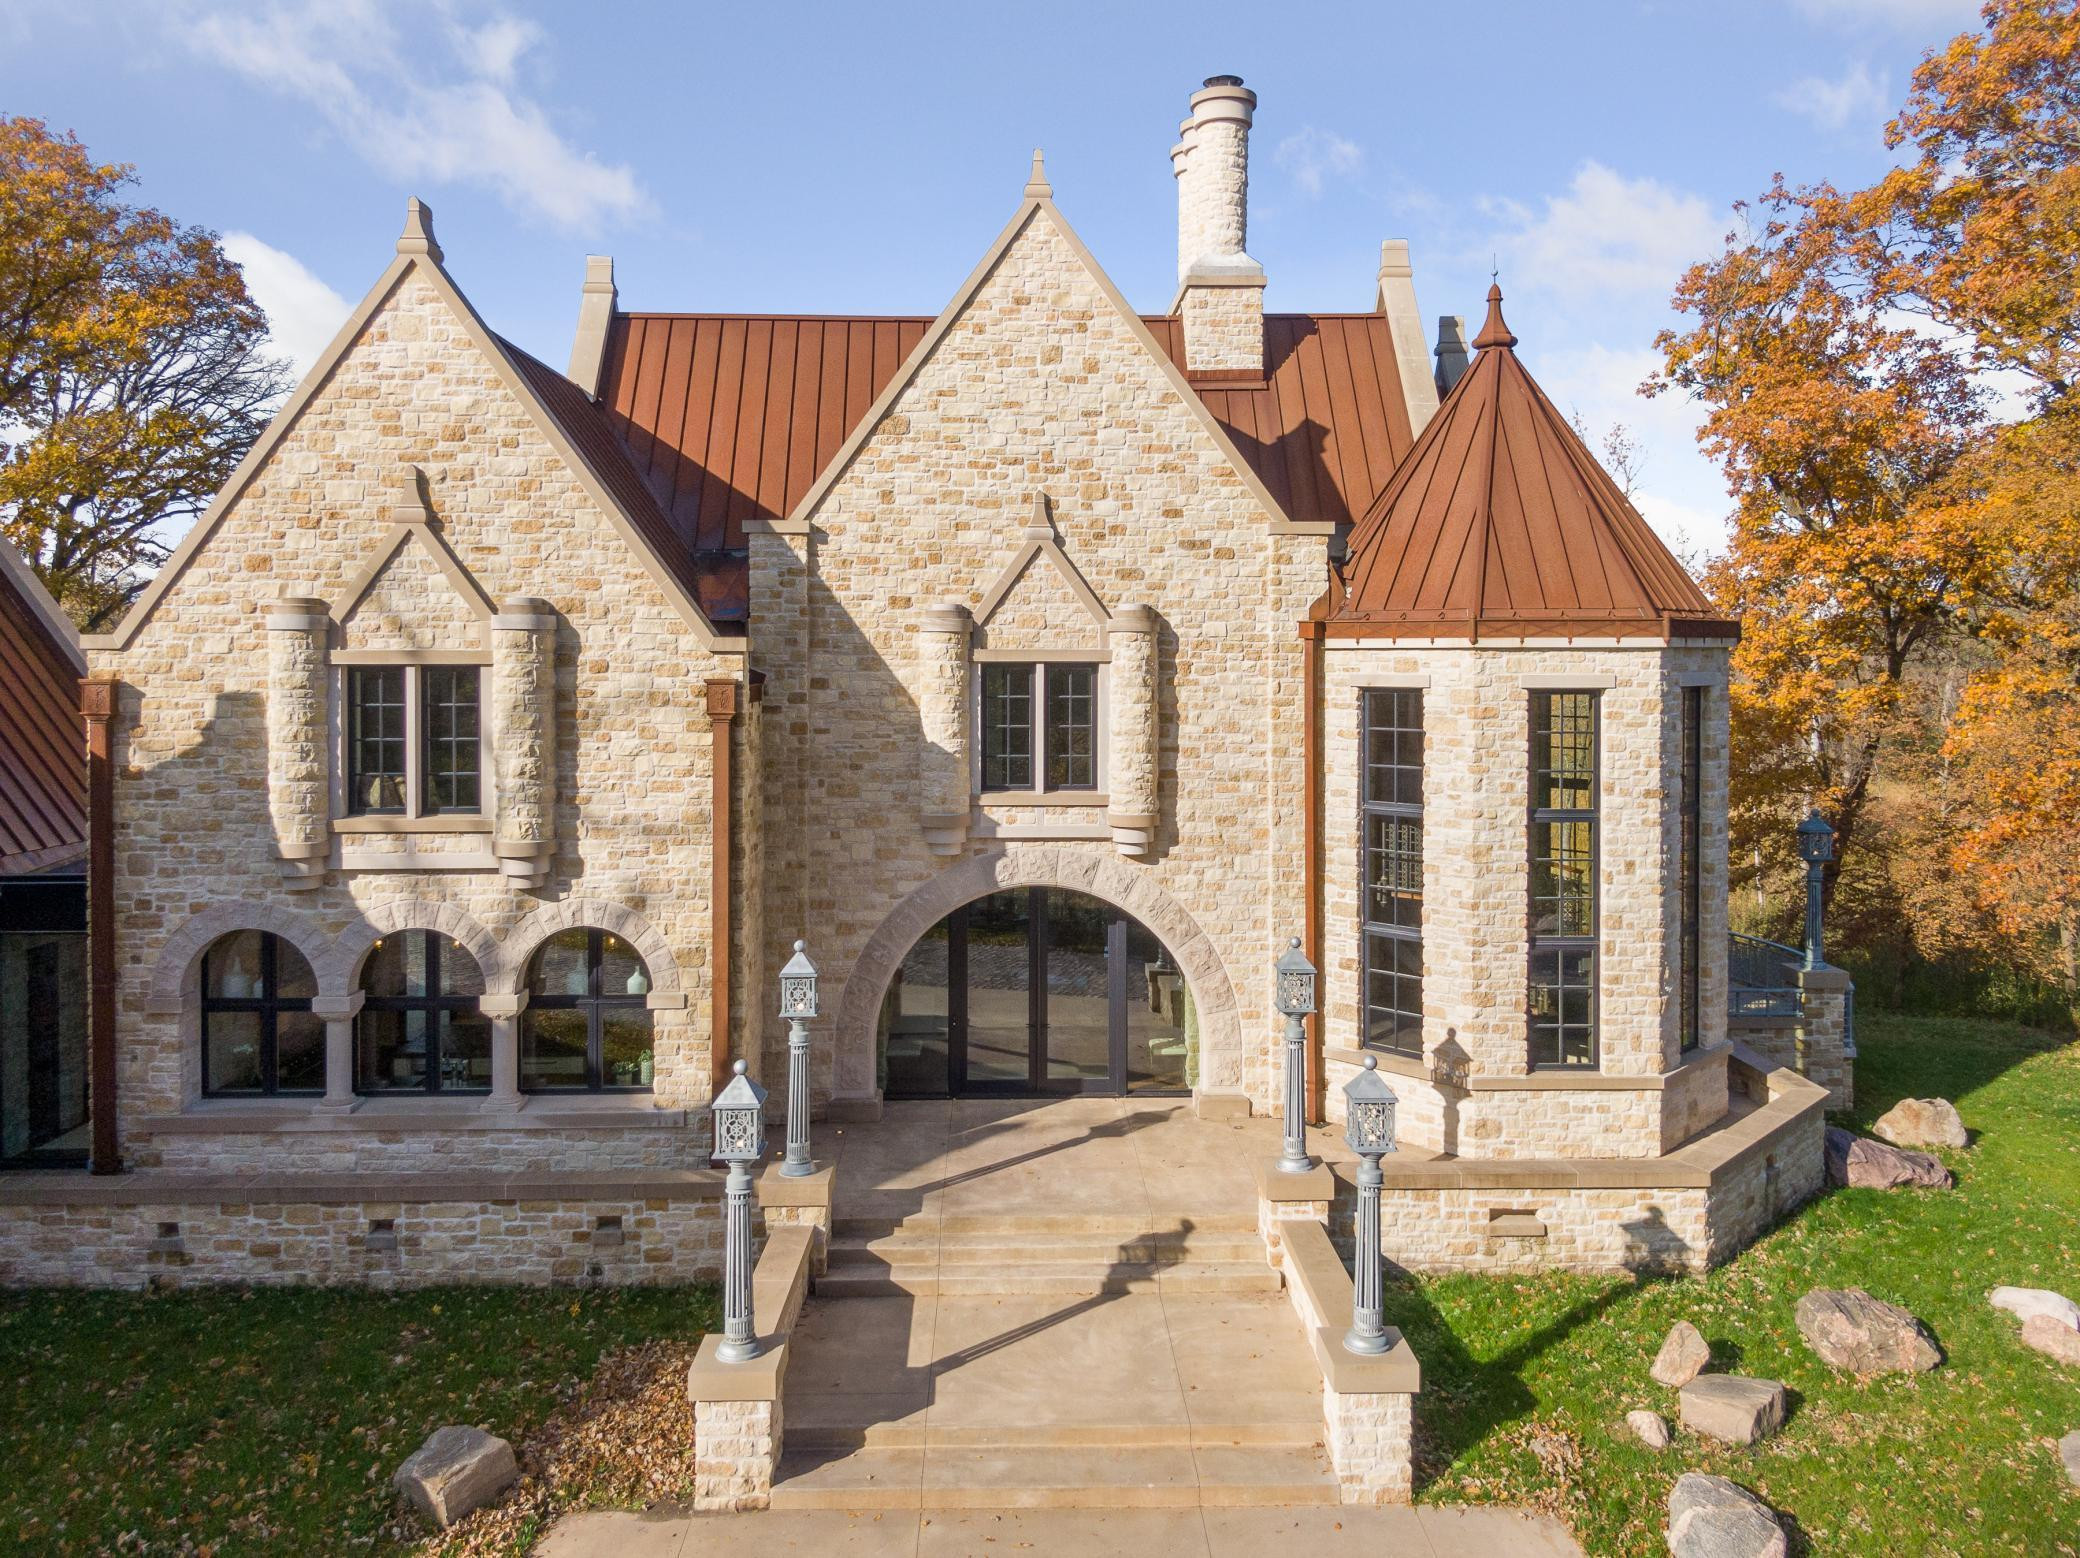 Beautifully constructed and architecturally sound! The property announces its presence with solid Saint Croix Valley limestone blocks. Fun fact: 45 truckloads of solid limestone delivered and tumbled onsite to create this incredible masterpiece.